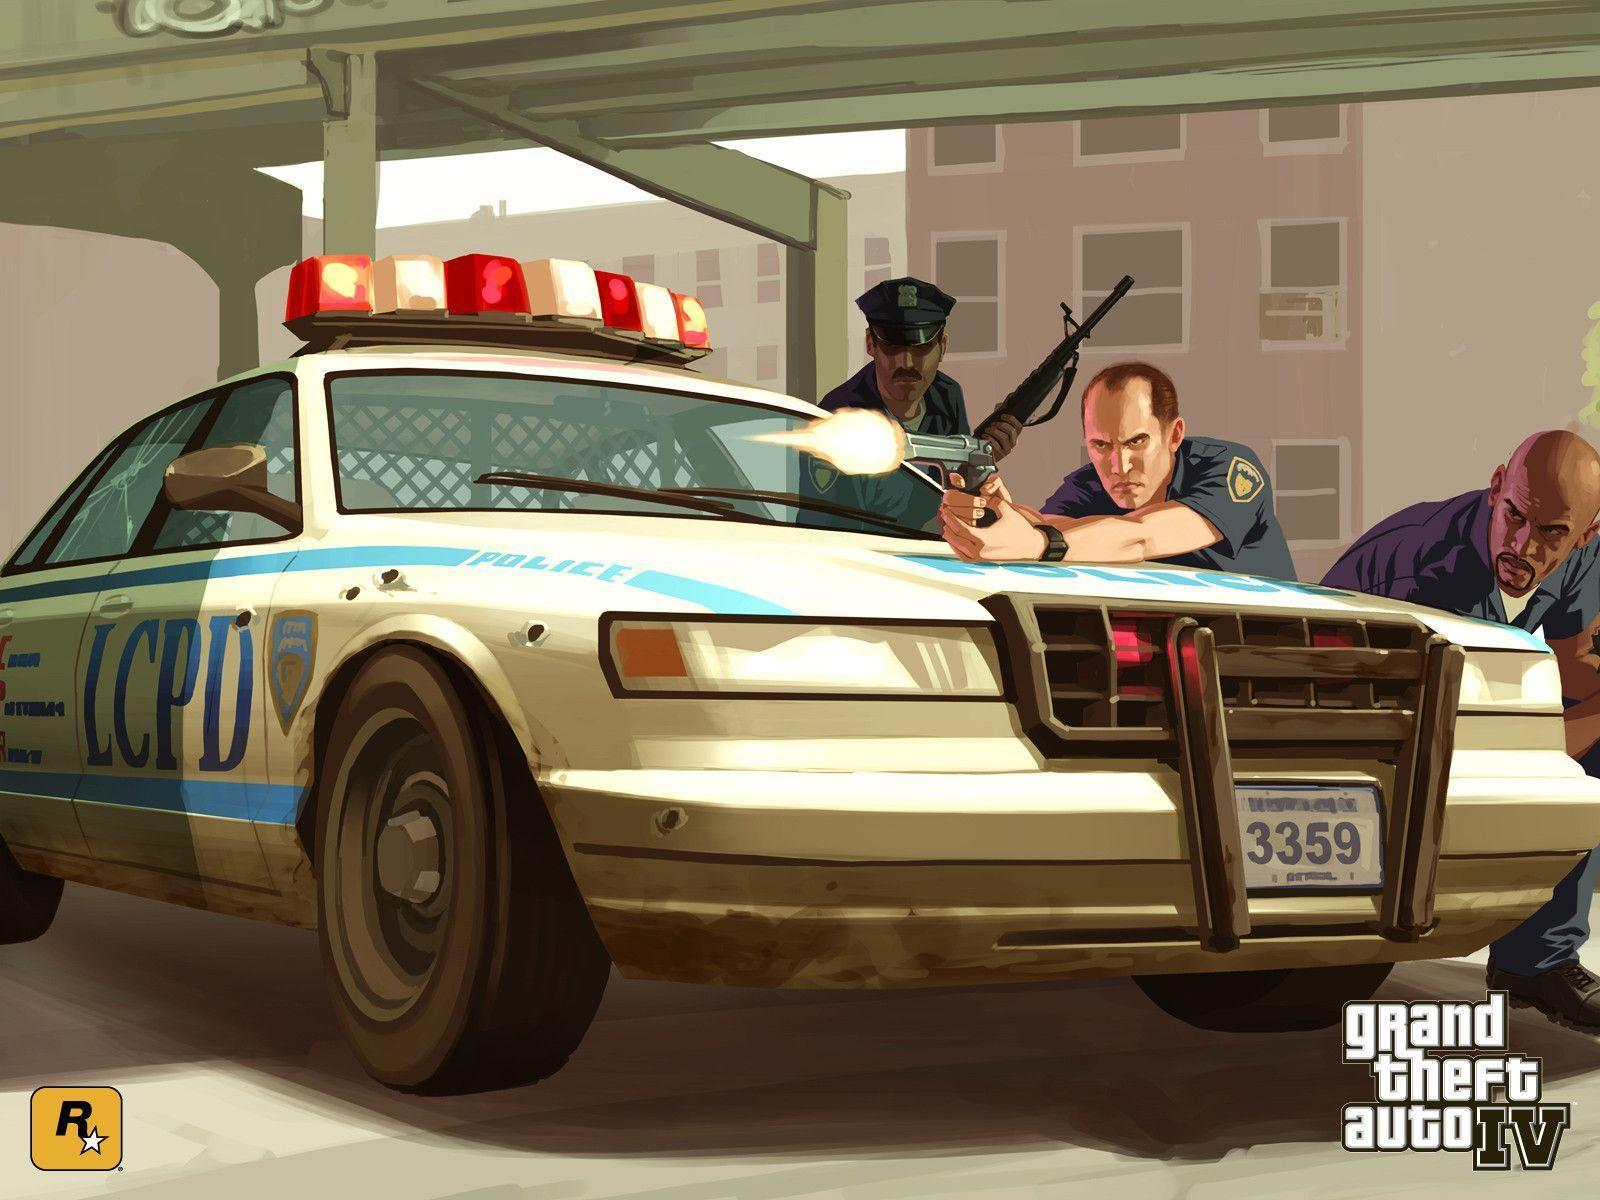 GTA 4 / Grand Theft Auto IV - Official IV Wallpapers - on GTA.